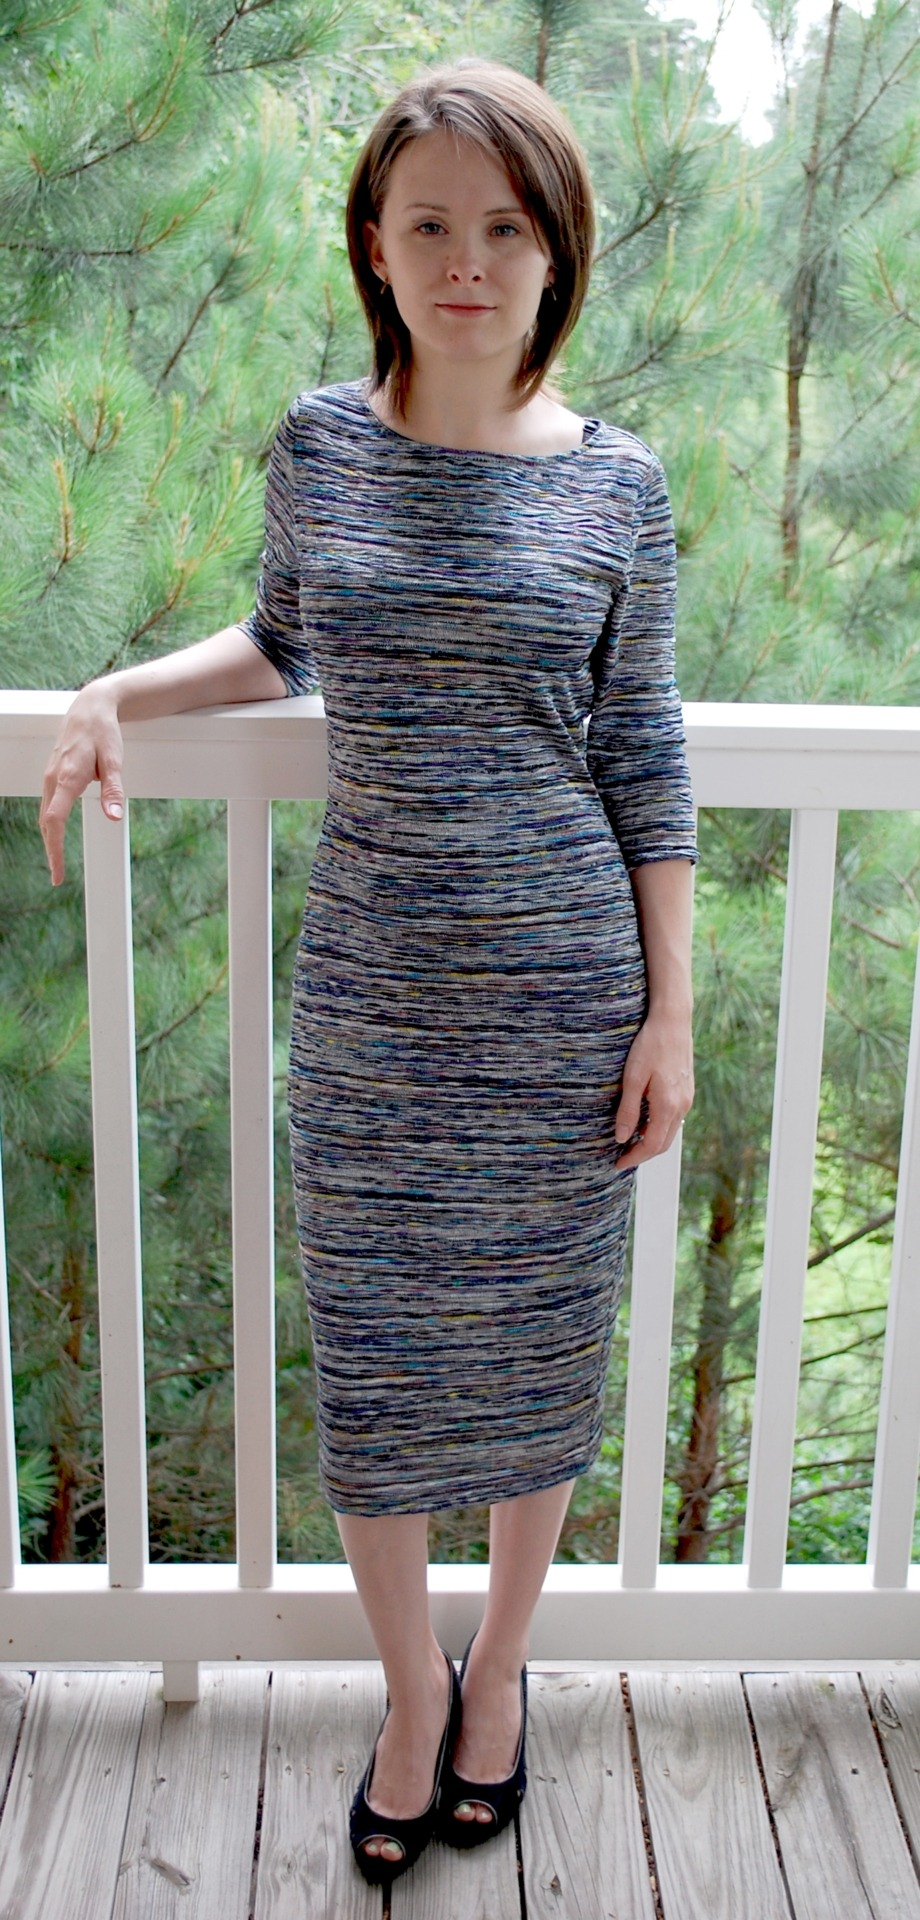 Sarah Waynick, one of the winners of our Searle Dress Giveaway, sent us a pic of her in her dress. Doesn't she look absolutely fabulous? Thanks for sharing, Sarah!